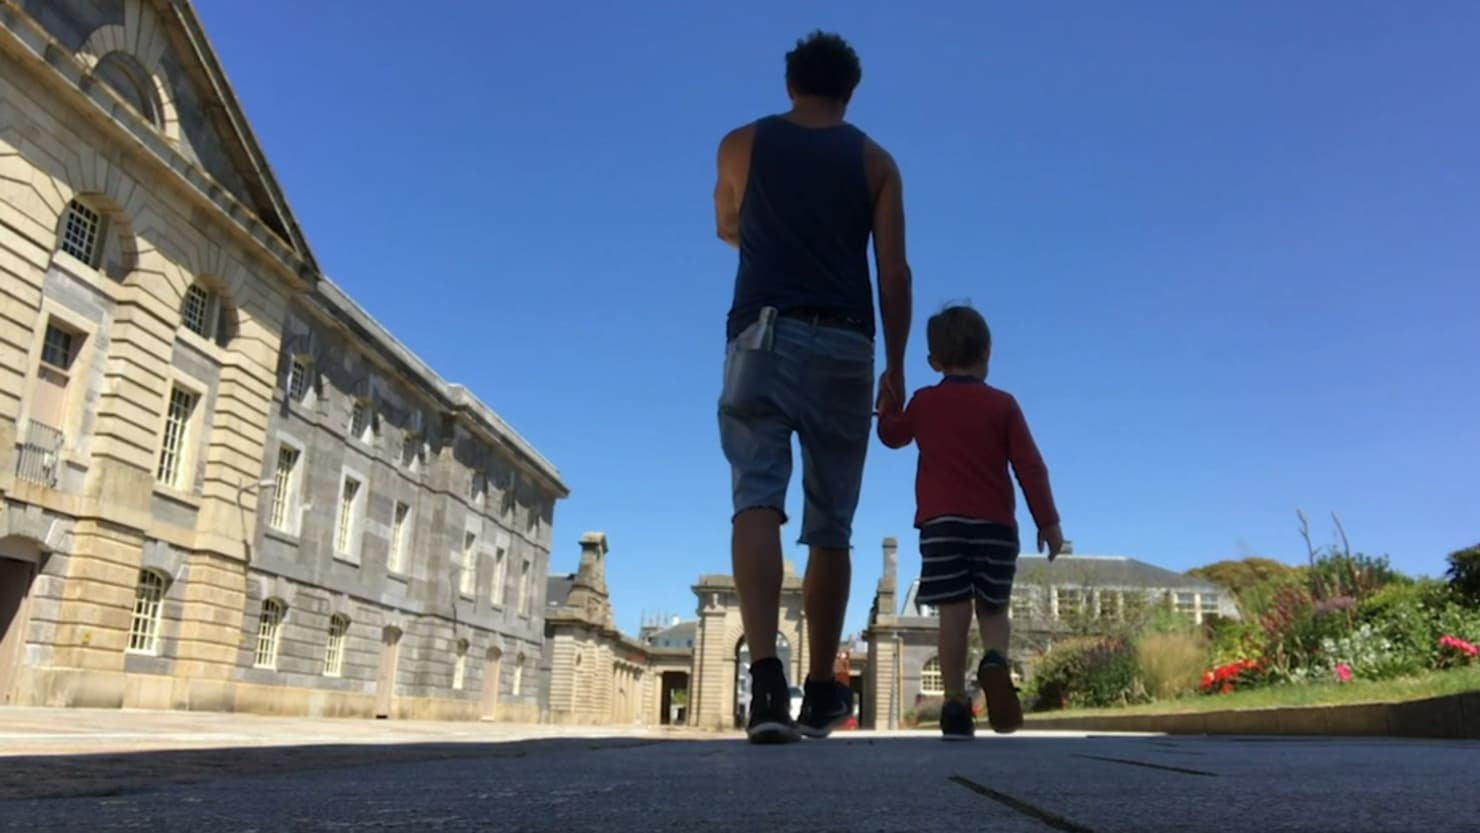 Andy Quick walking through the Royal William Yard with his young son